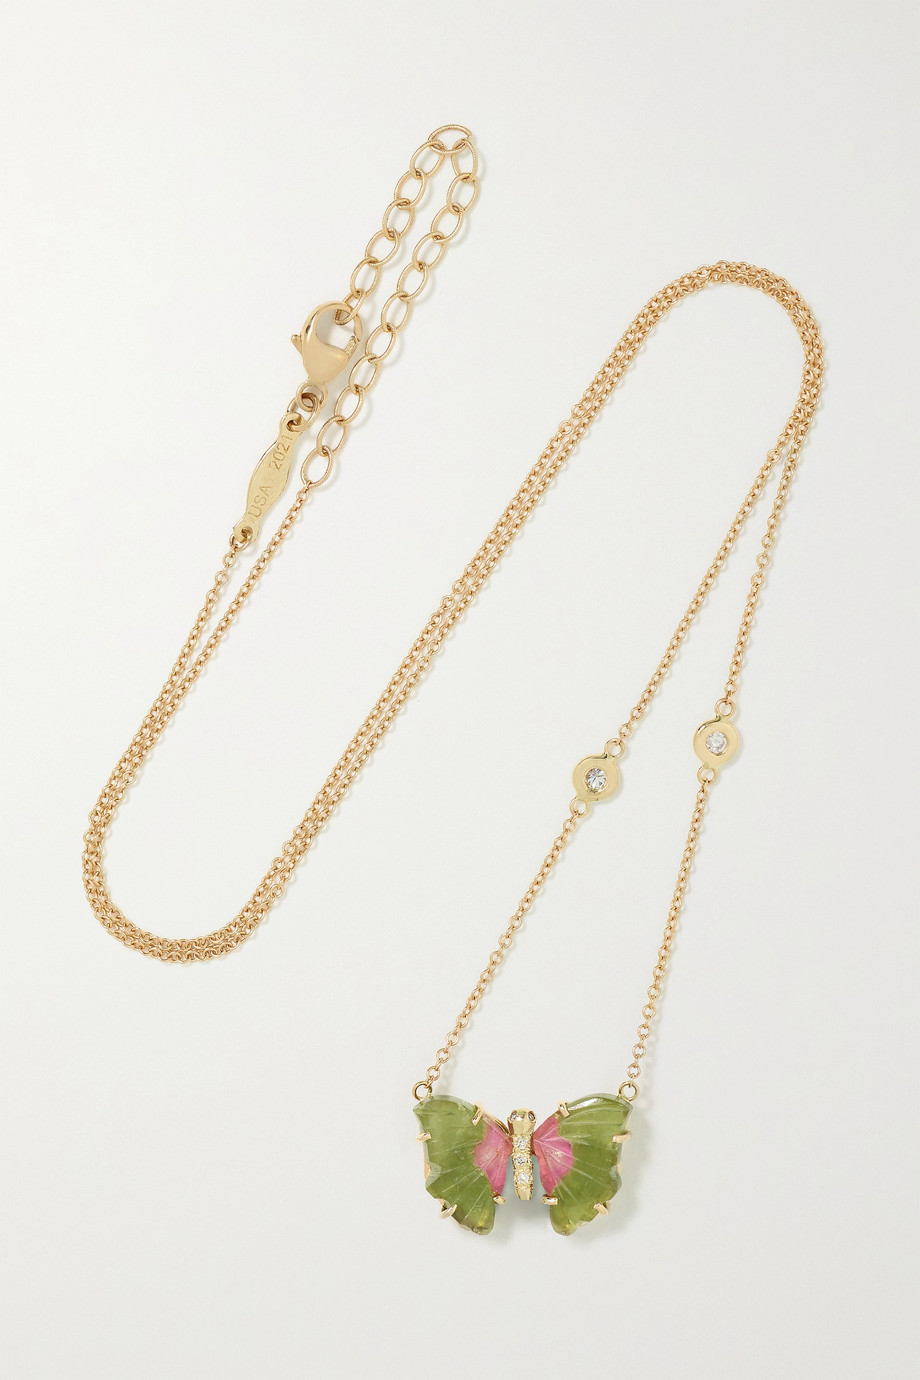 JACQUIE AICHE 14-karat gold, tourmaline and diamond necklace